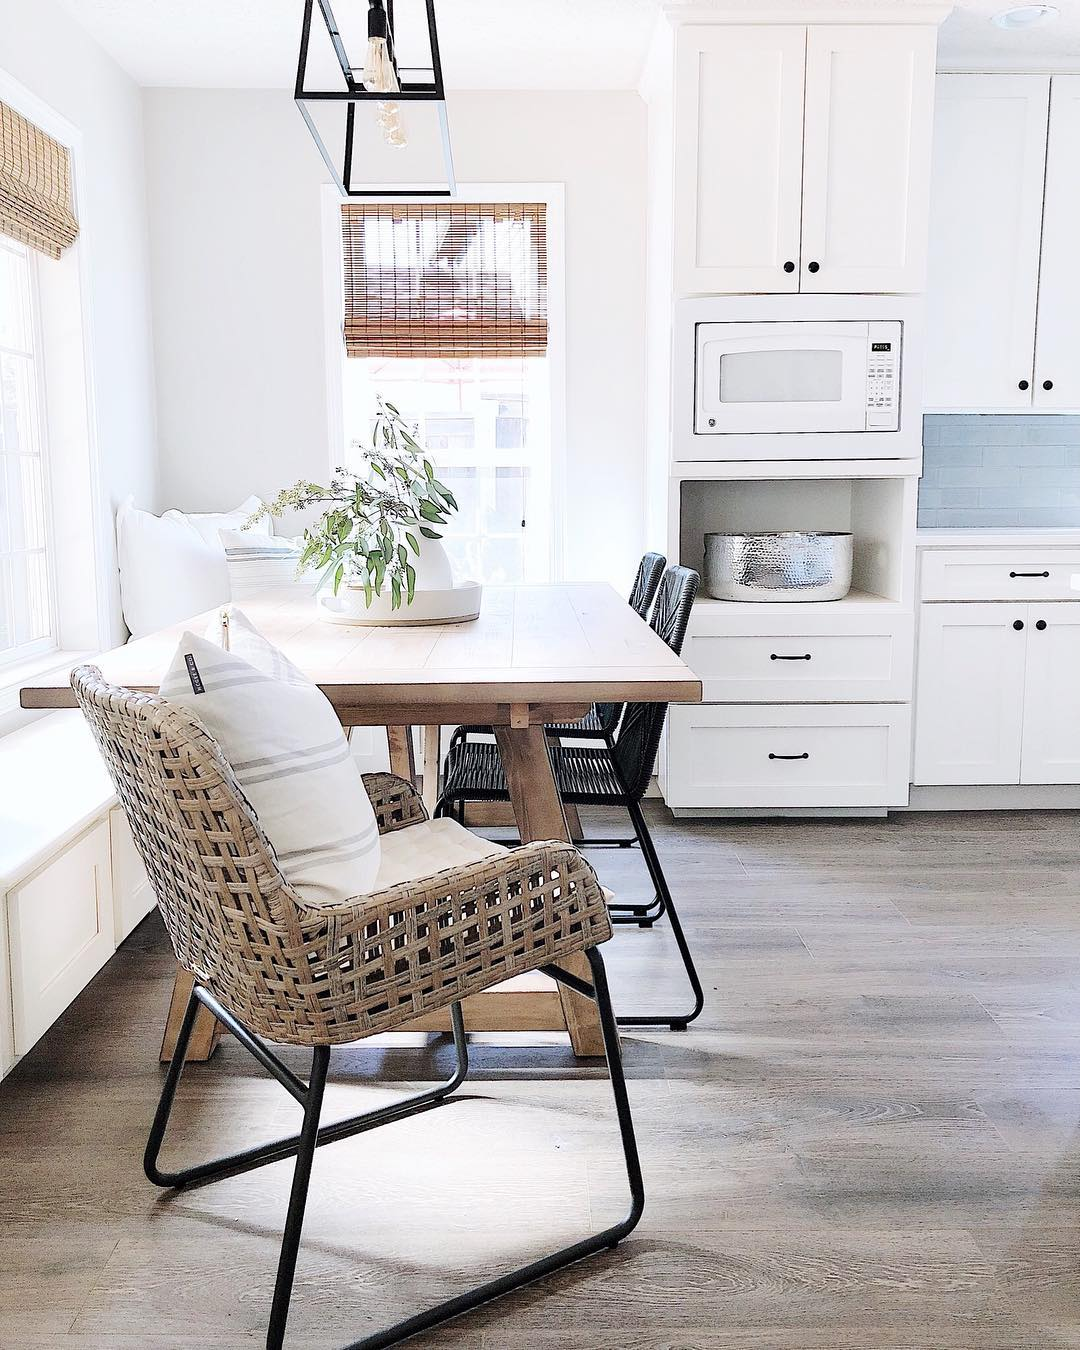 Neutral Breakfast Nook with natural weave chair